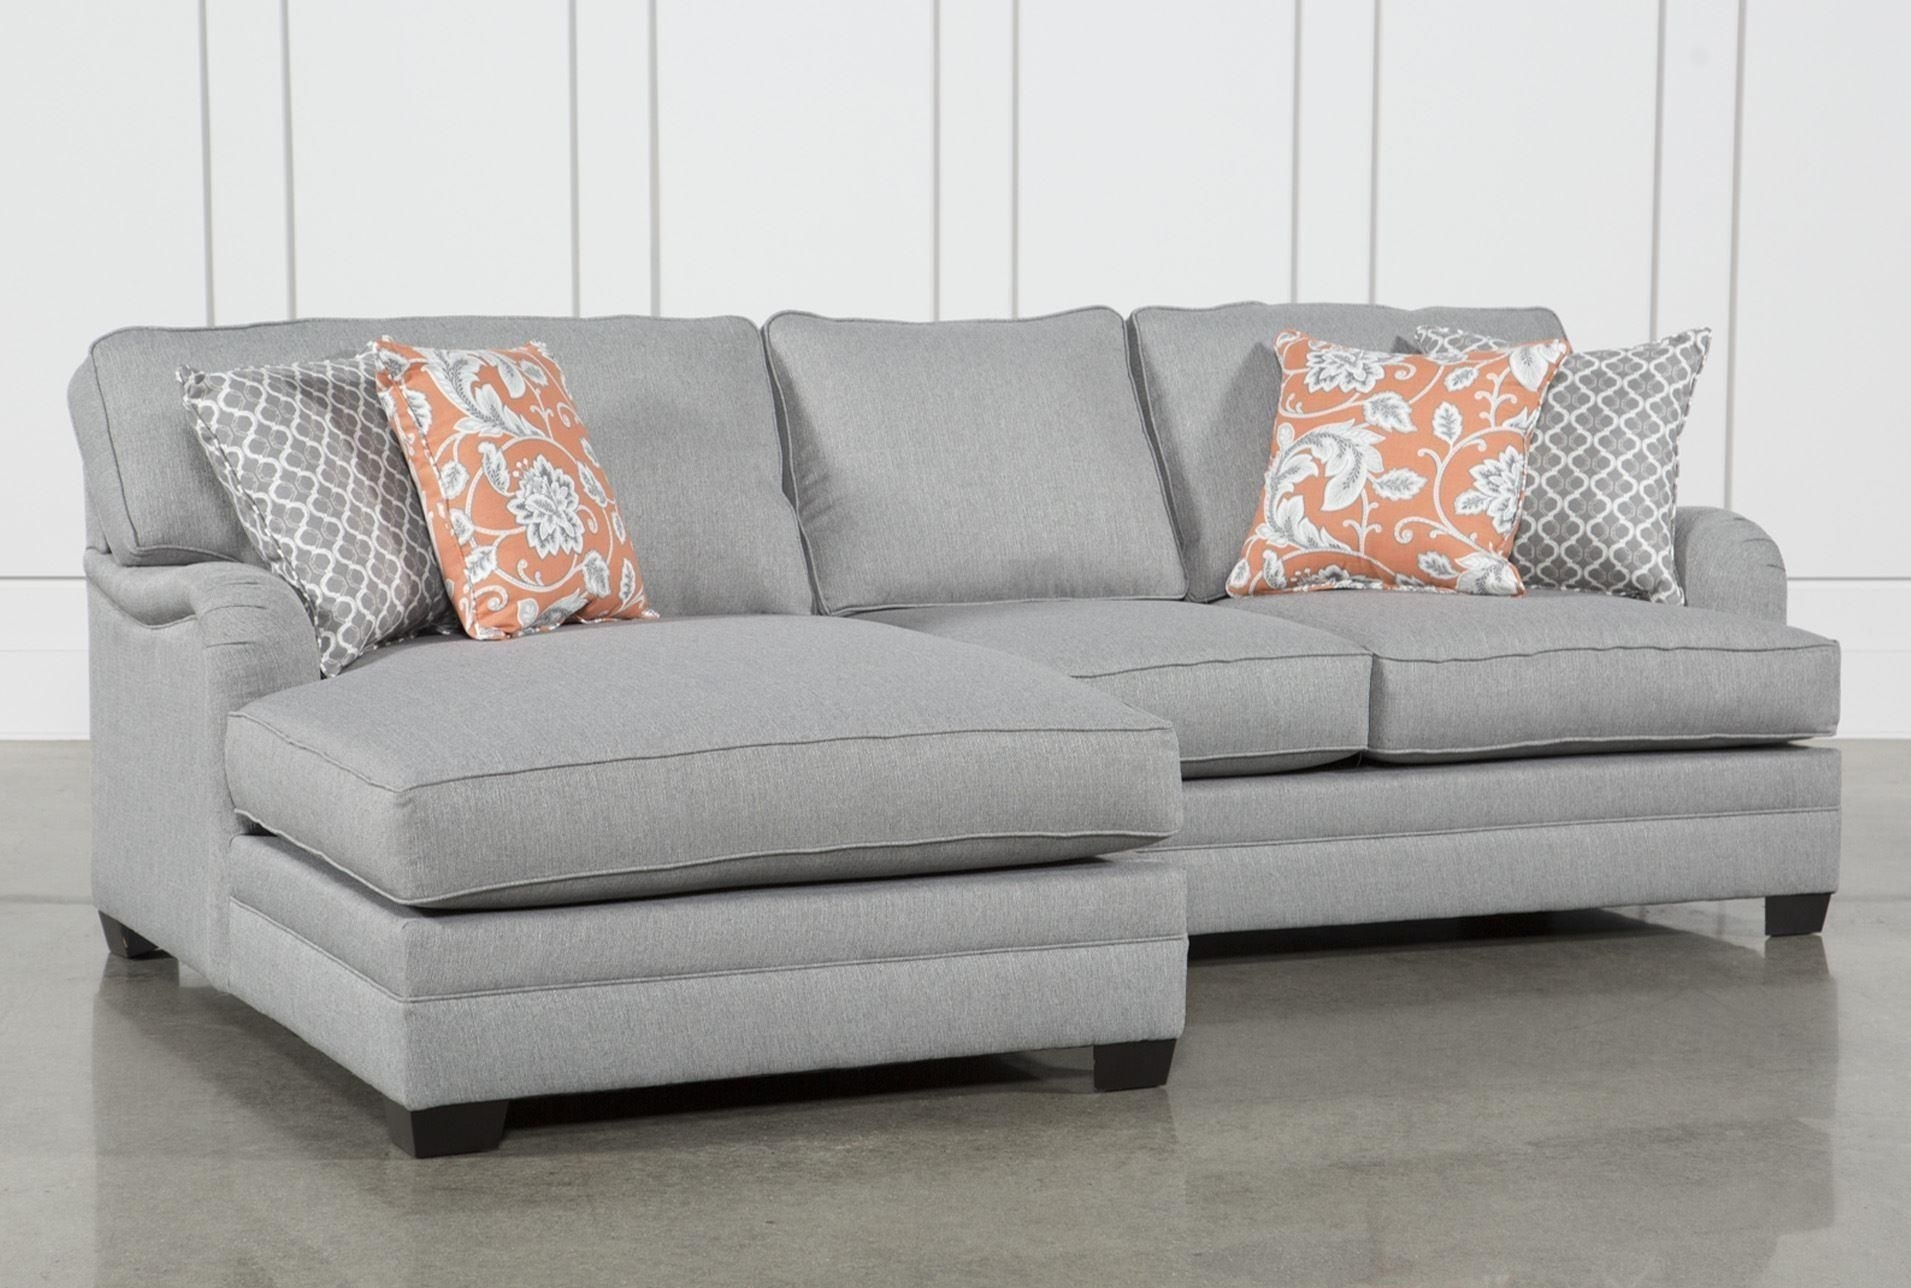 Marissa 2 Piece Sectional W/laf Chaise, Grey, Sofas In Mcculla Sofa Sectionals With Reversible Chaise (Image 12 of 25)